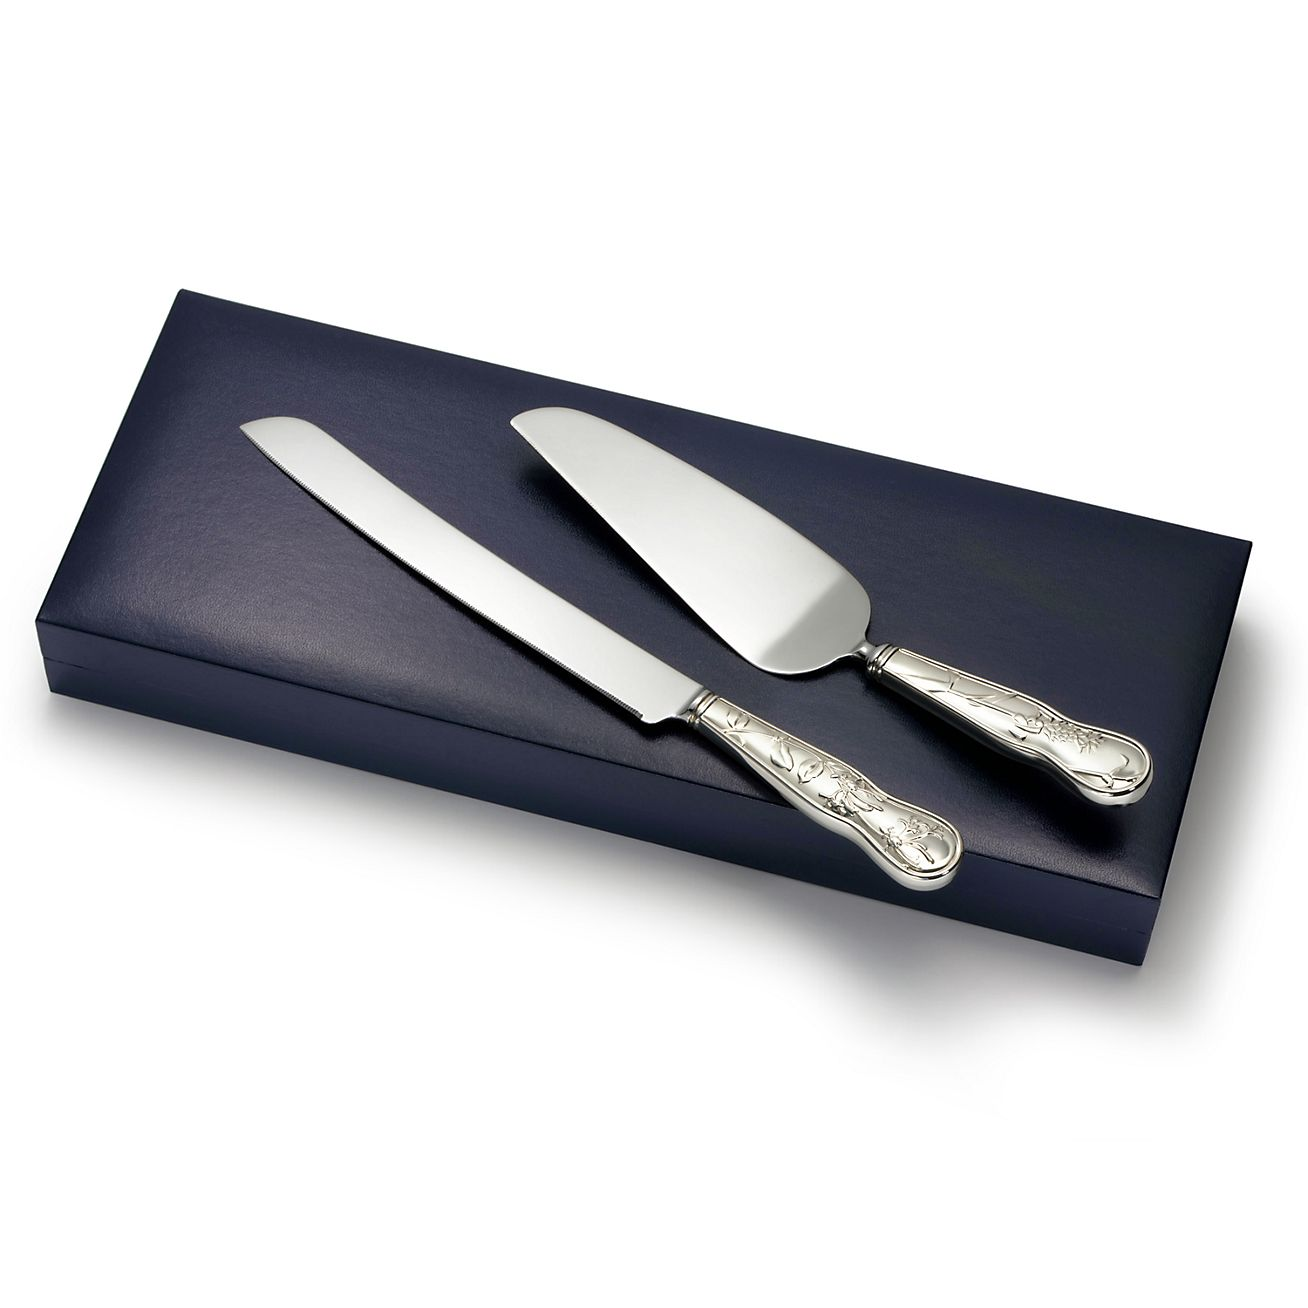 tiffany and co wedding cake server american garden cake knife and server in sterling silver 20990